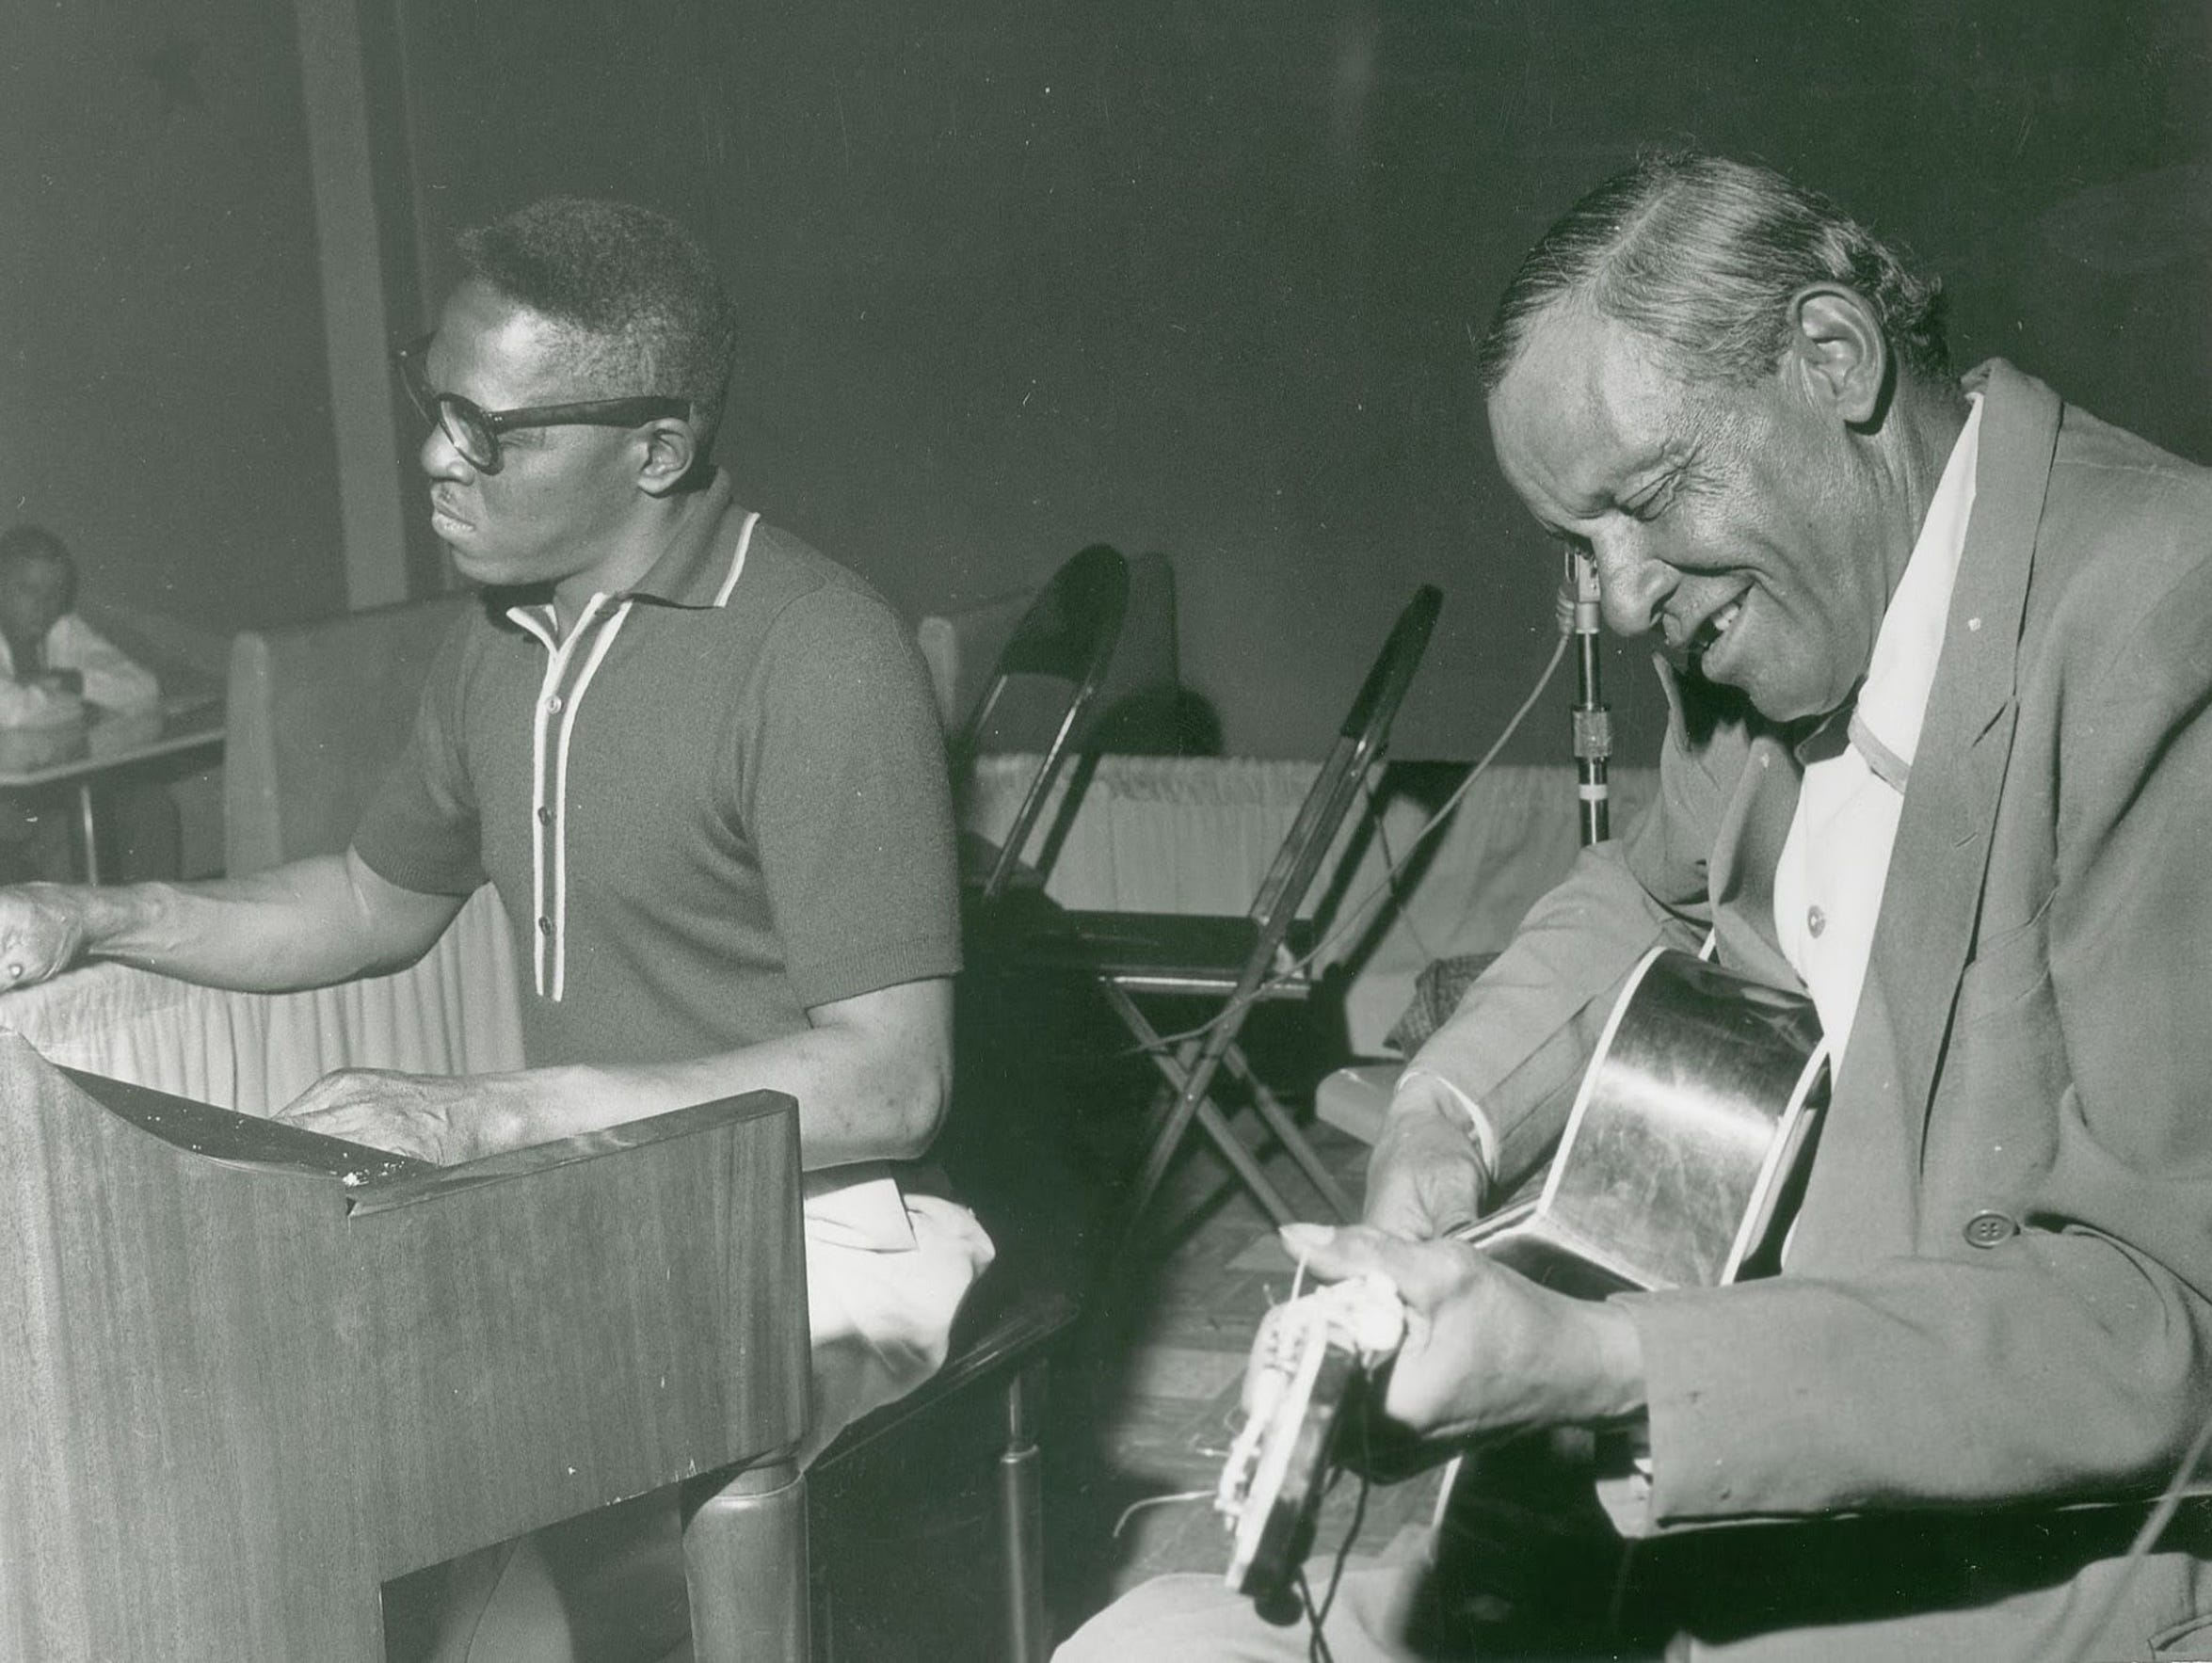 Scrapper Blackwell, right, is seen with keyboard player